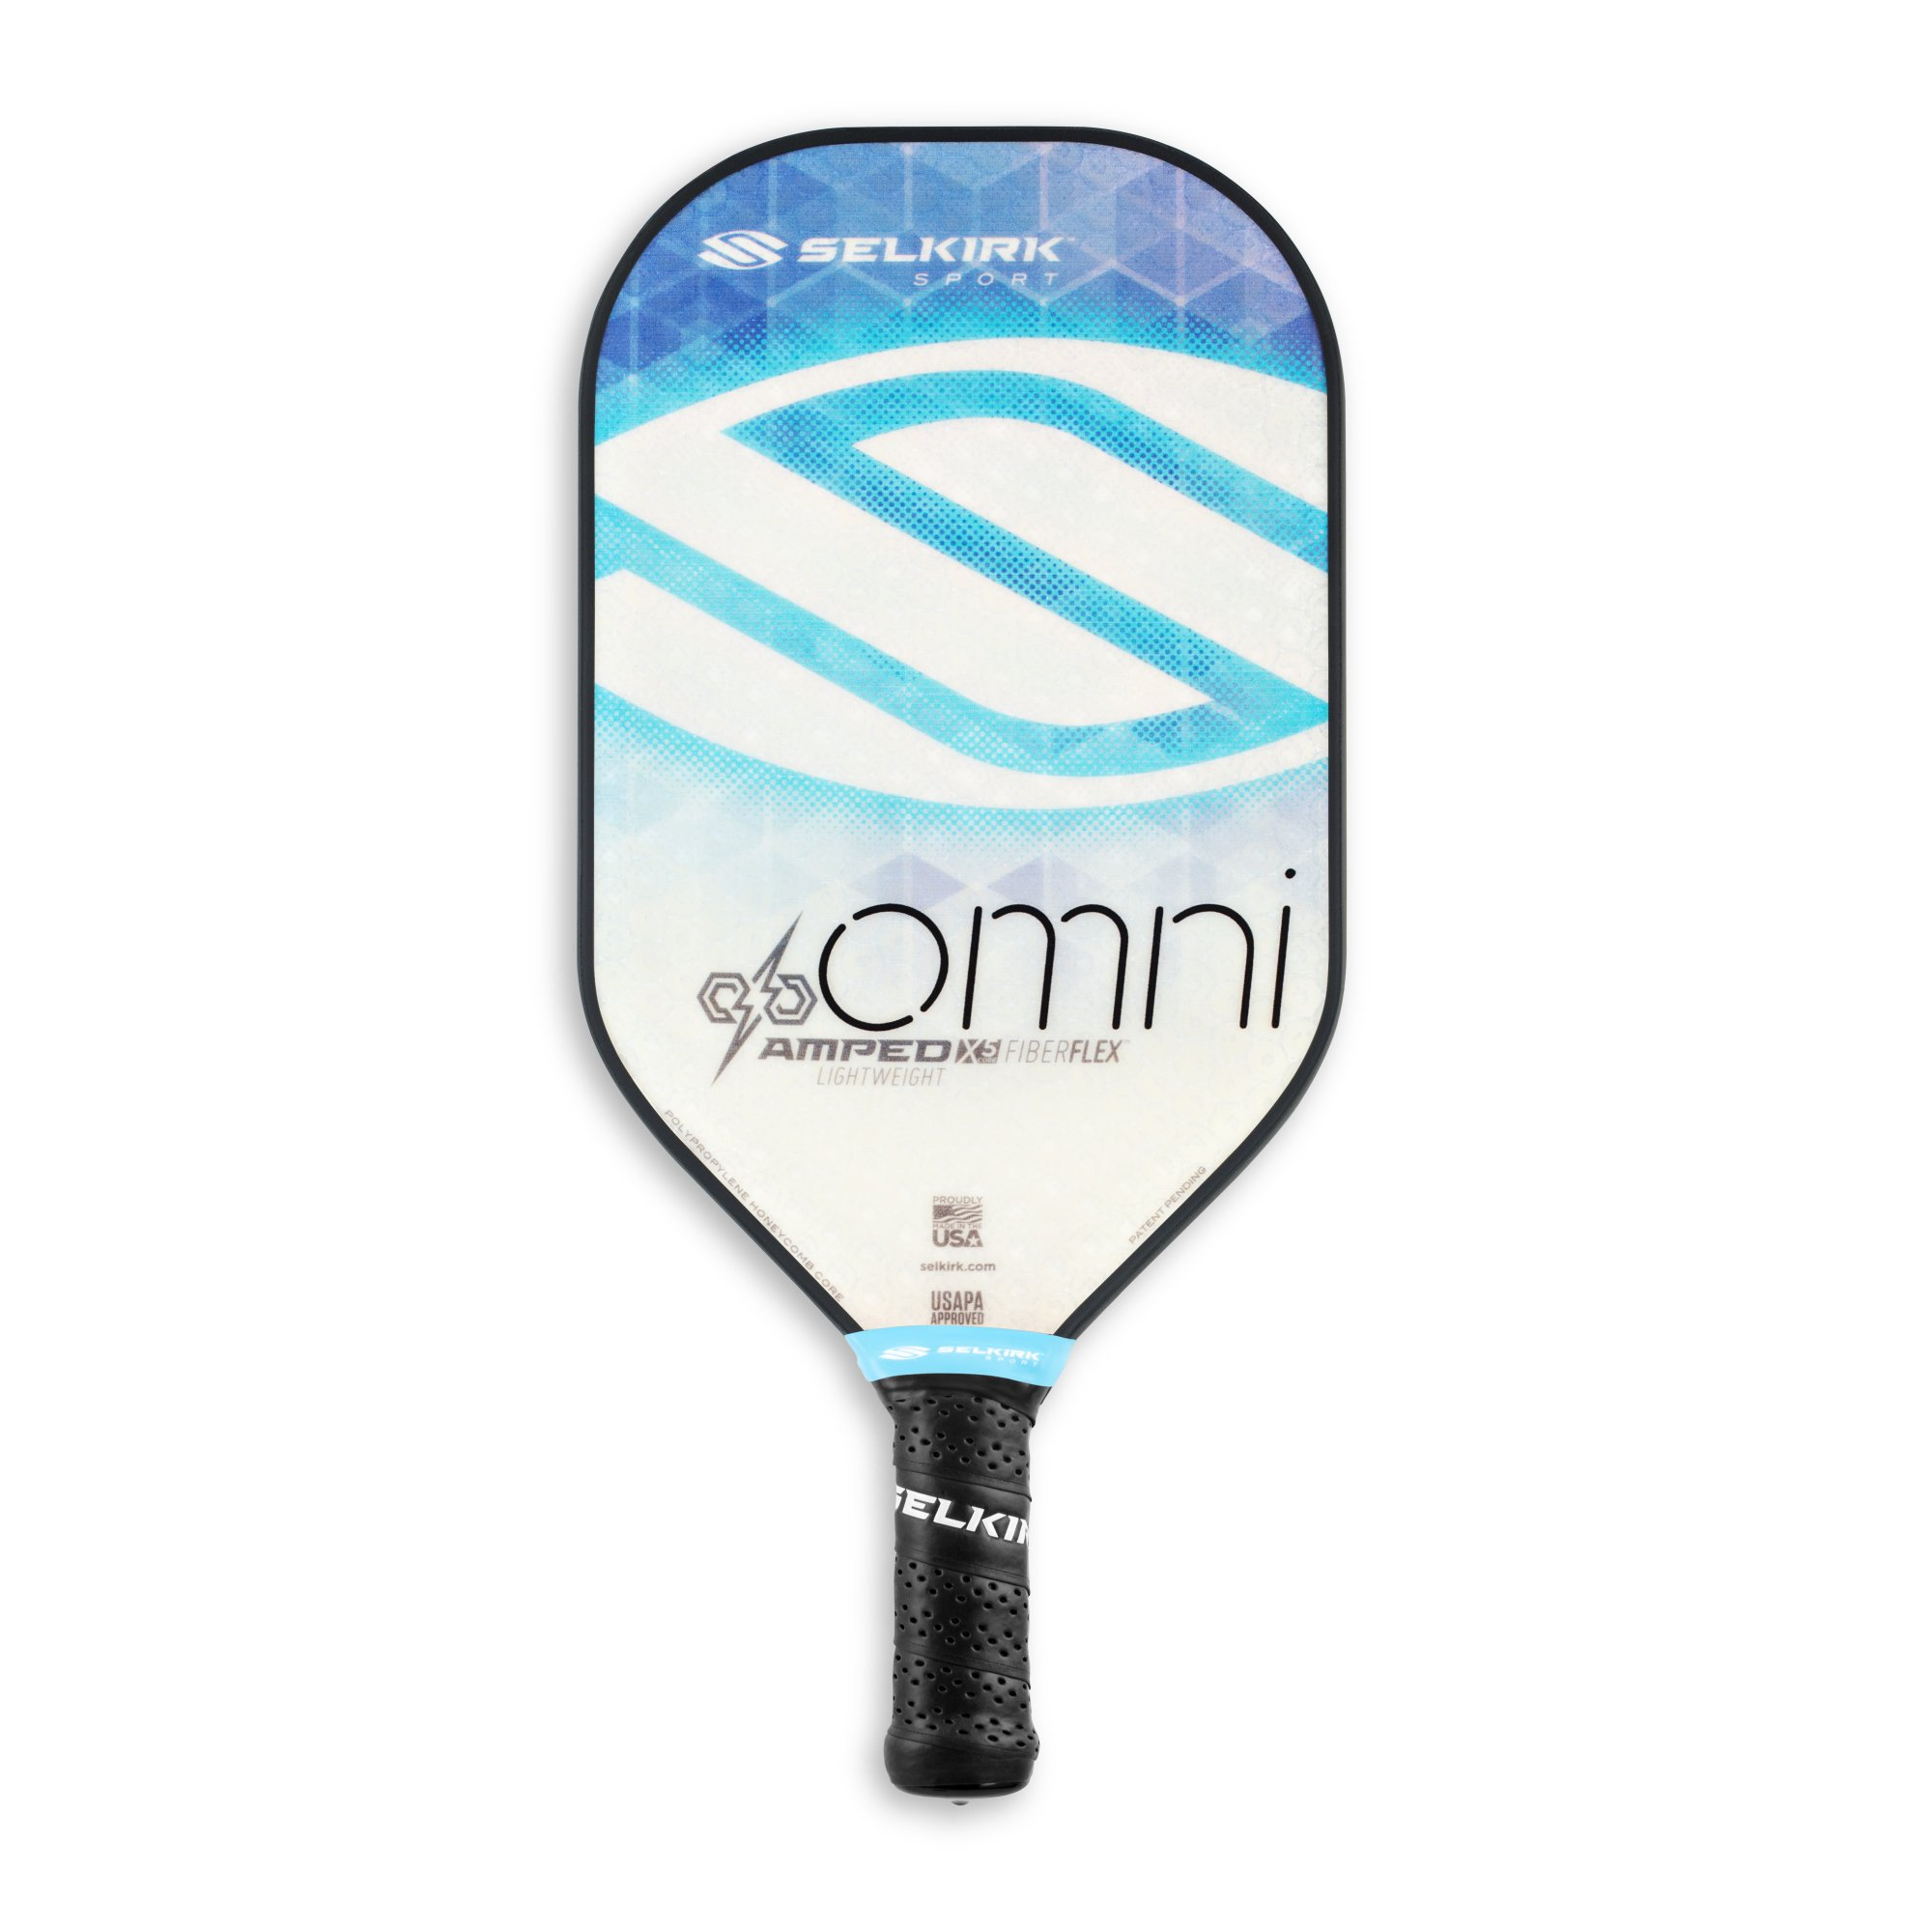 Selkirk Amped Pickleball Paddle - USAPA Approved - X5 Polypropylene Core - FiberFlex Fiberglass Face - 5 Sizes: Epic, S2, Omni, Maxima, and INVIKTA (Omni Lightweight - Sapphire Blue) by Selkirk Sport